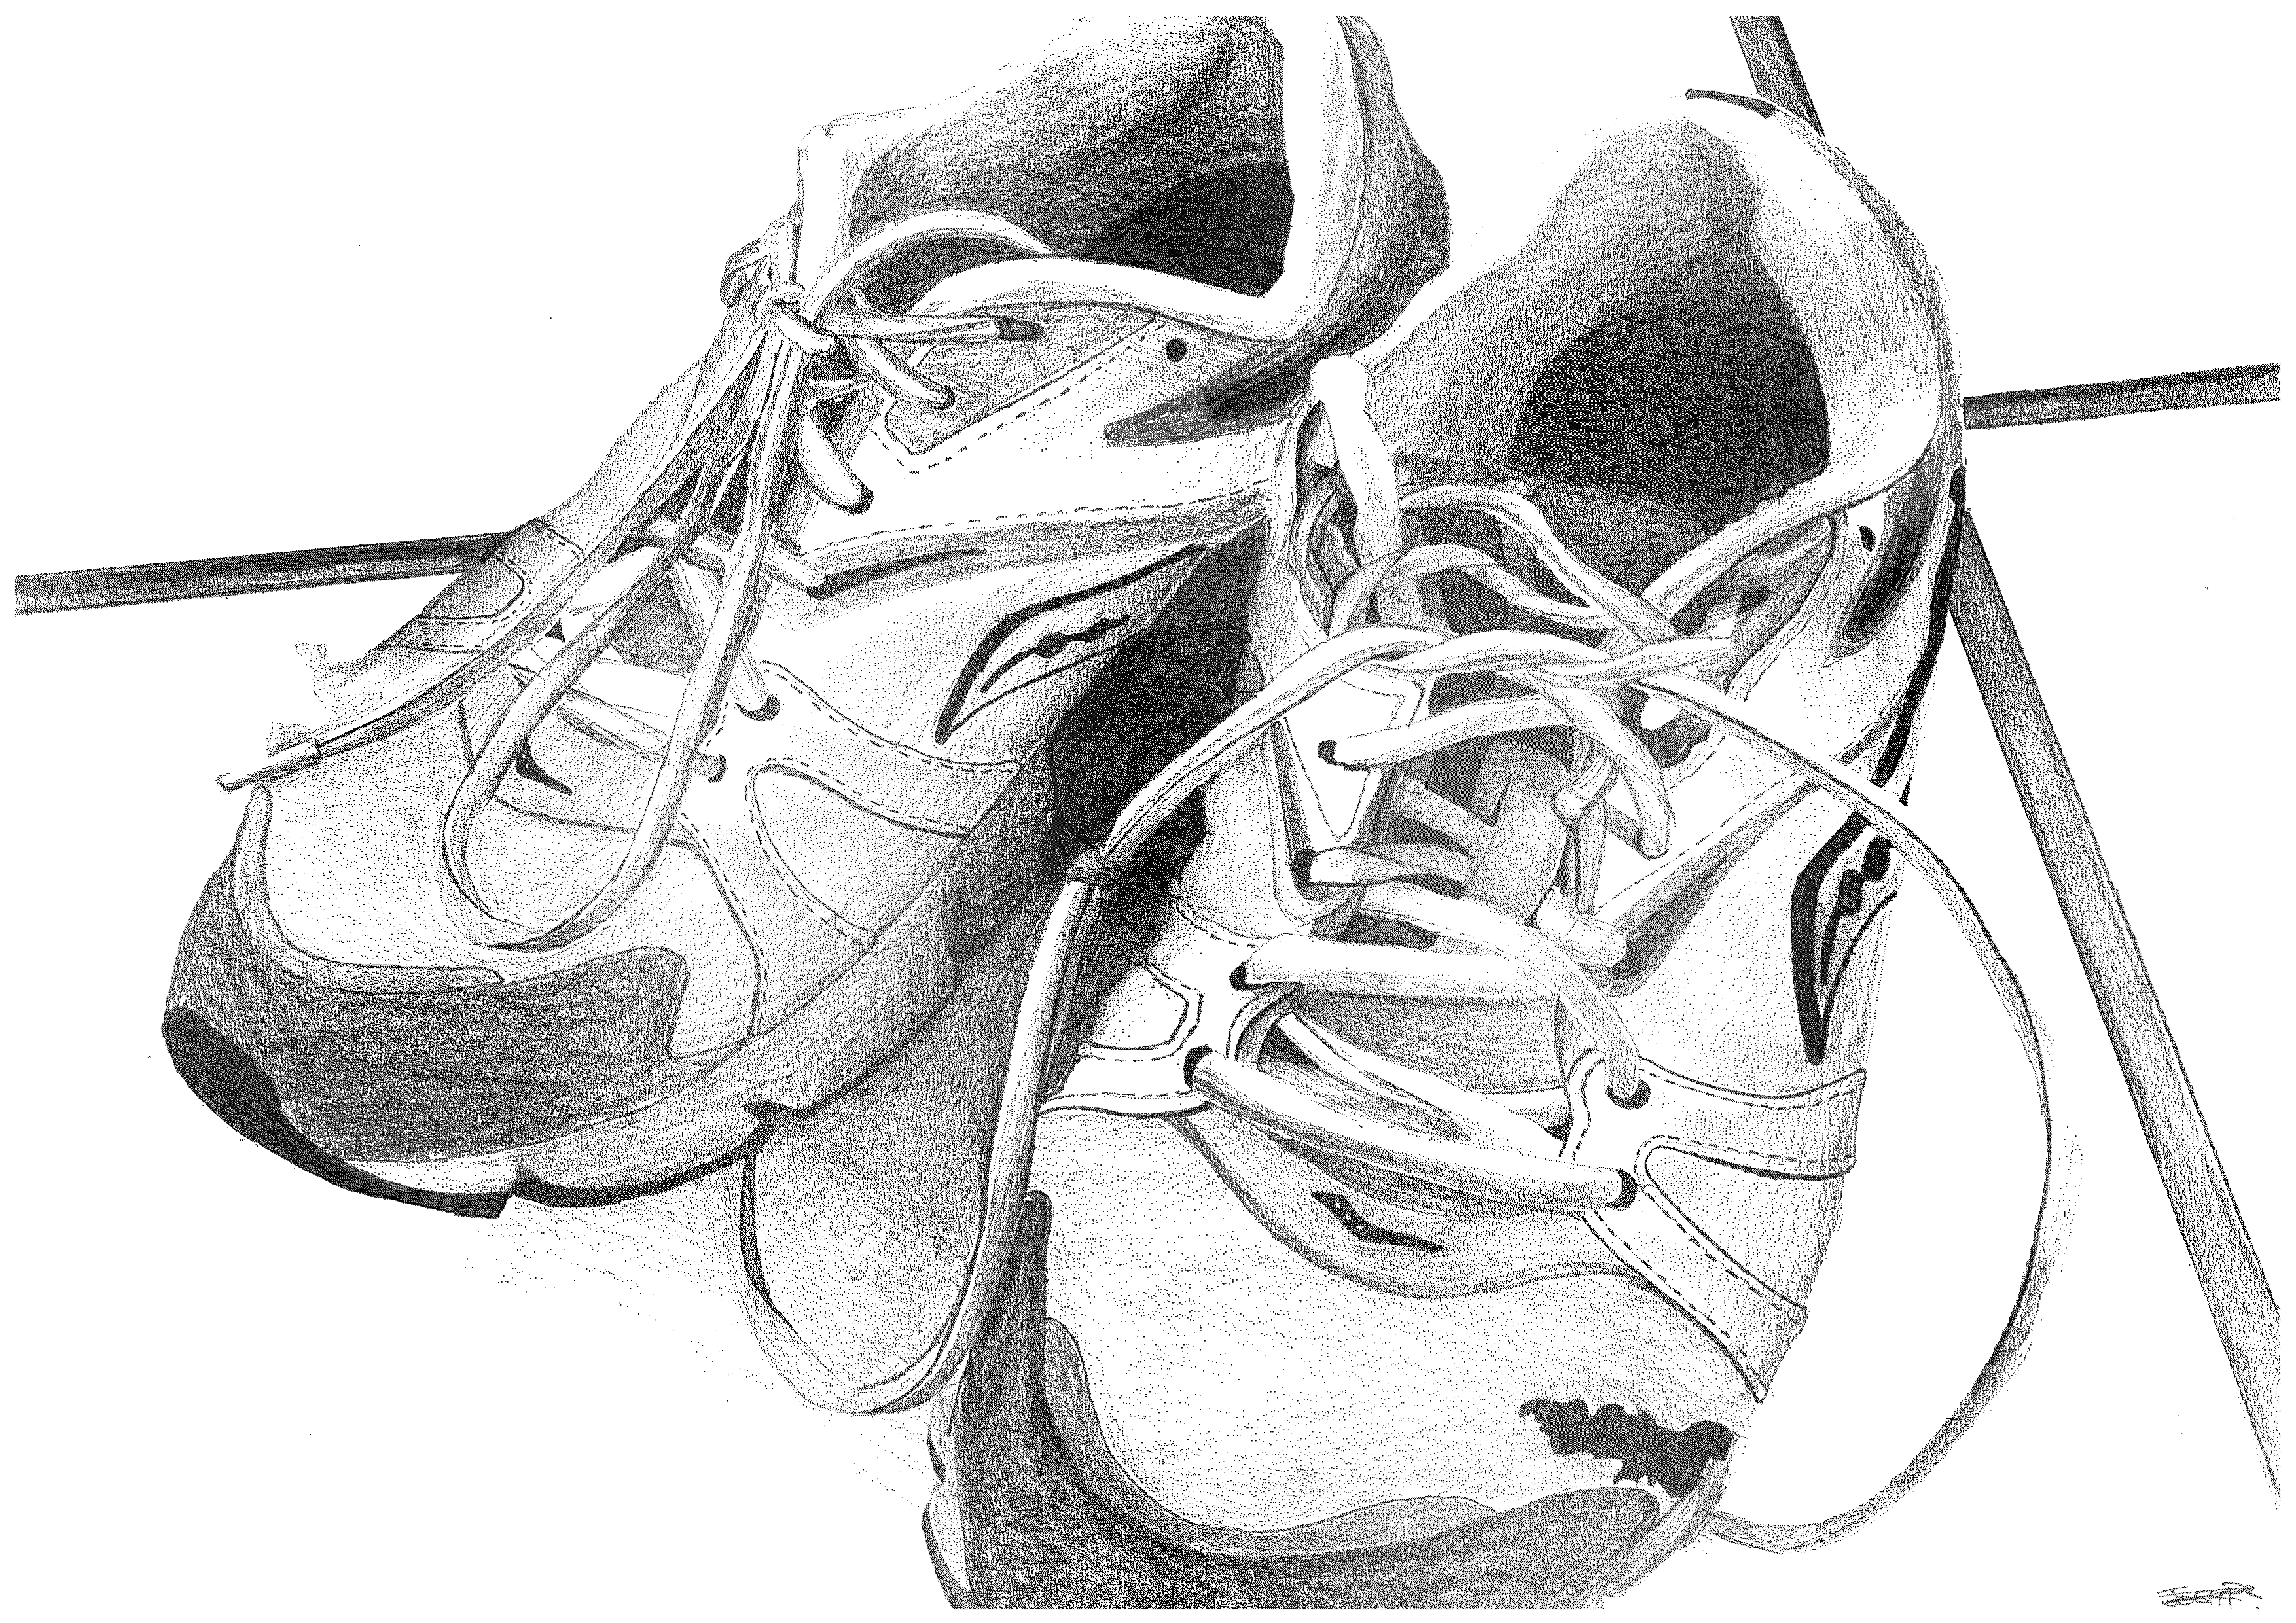 drawing of shoes image running shoes drawing free download on clipartmag of shoes image drawing